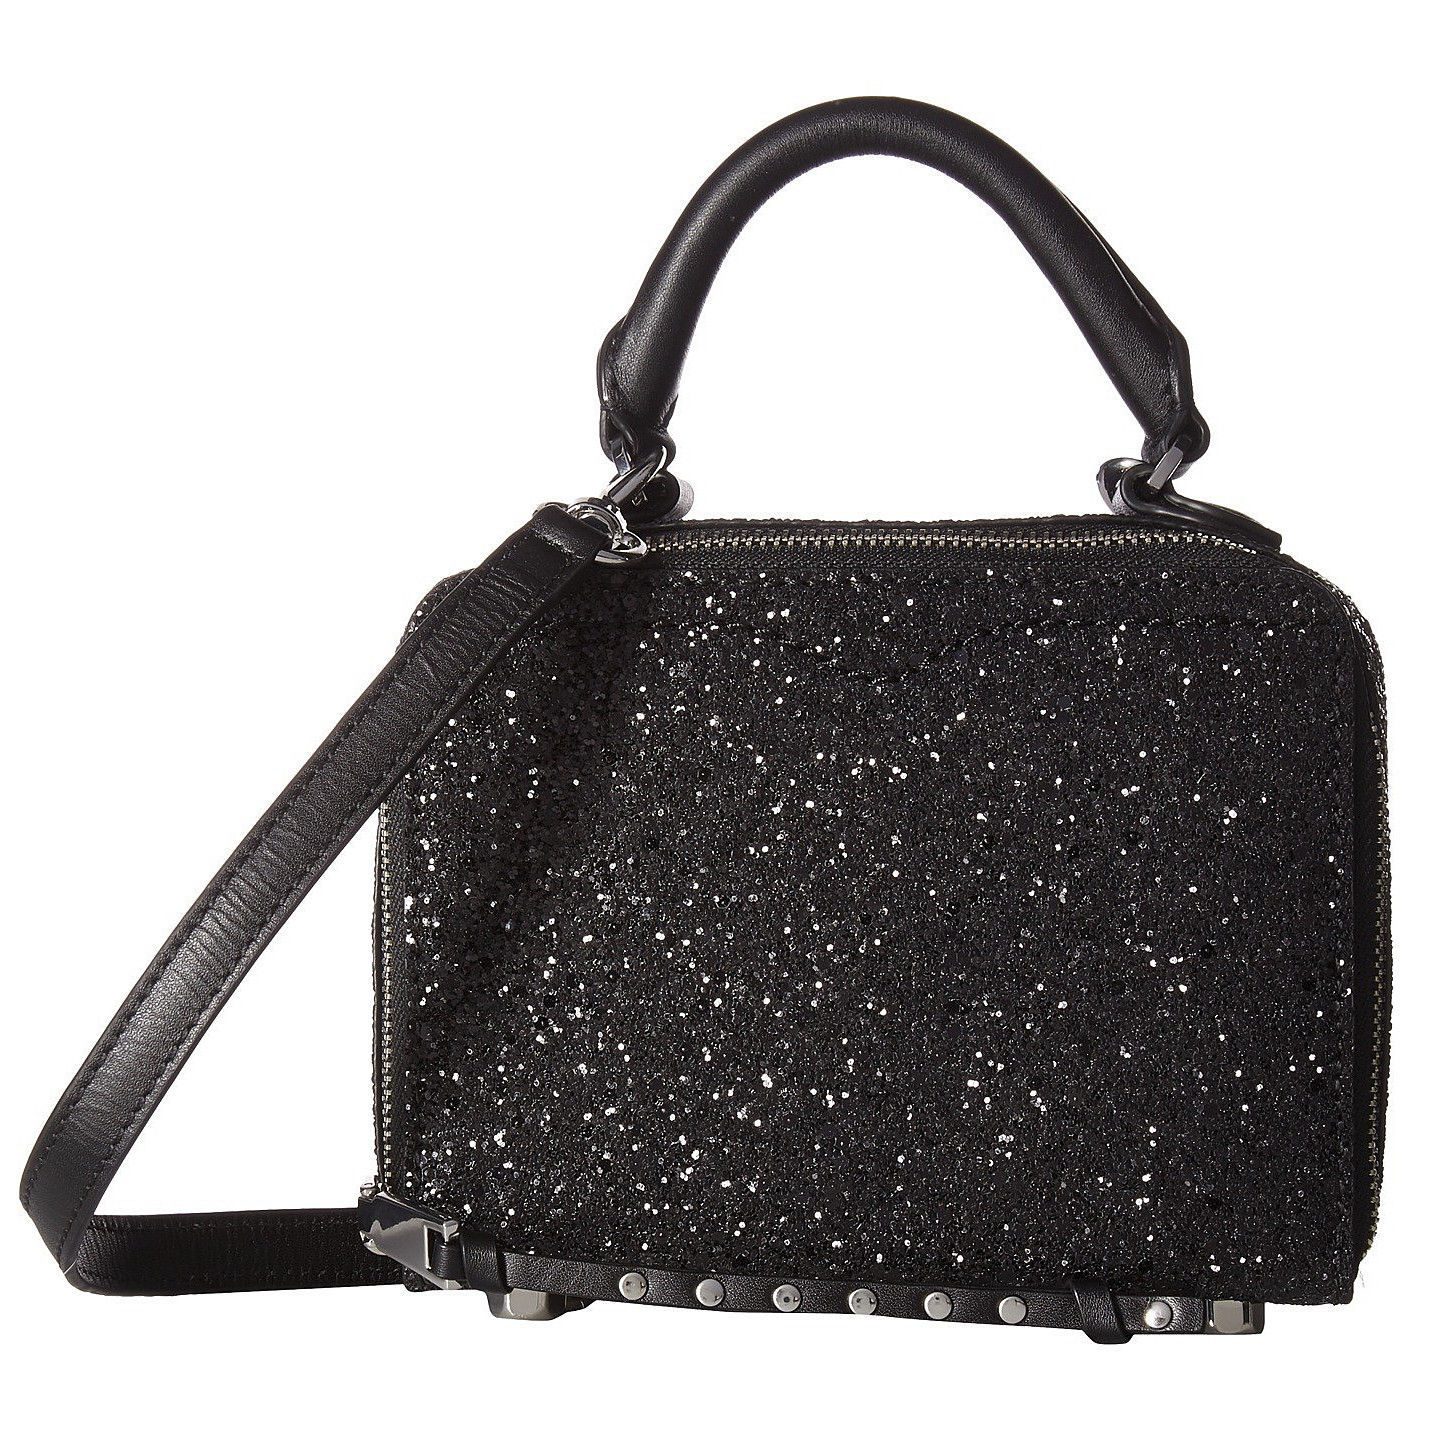 Primary image for Rebecca Minkoff Black Glitter Studded Leather Box Crossbody Bag NWT